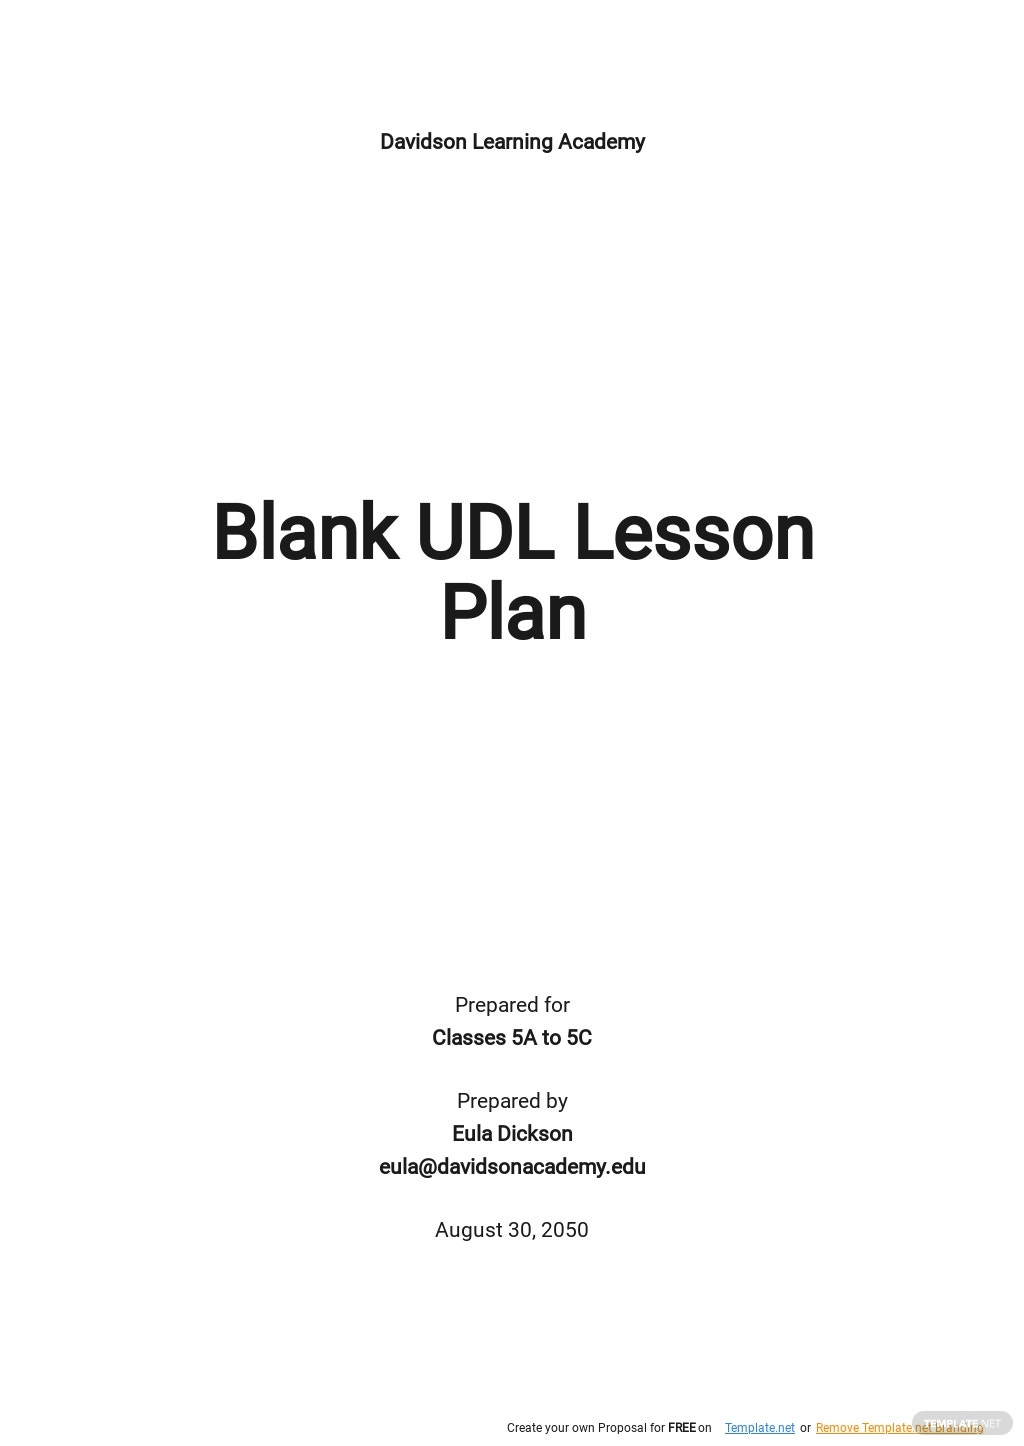 Blank UDL Lesson Plan Template.jpe